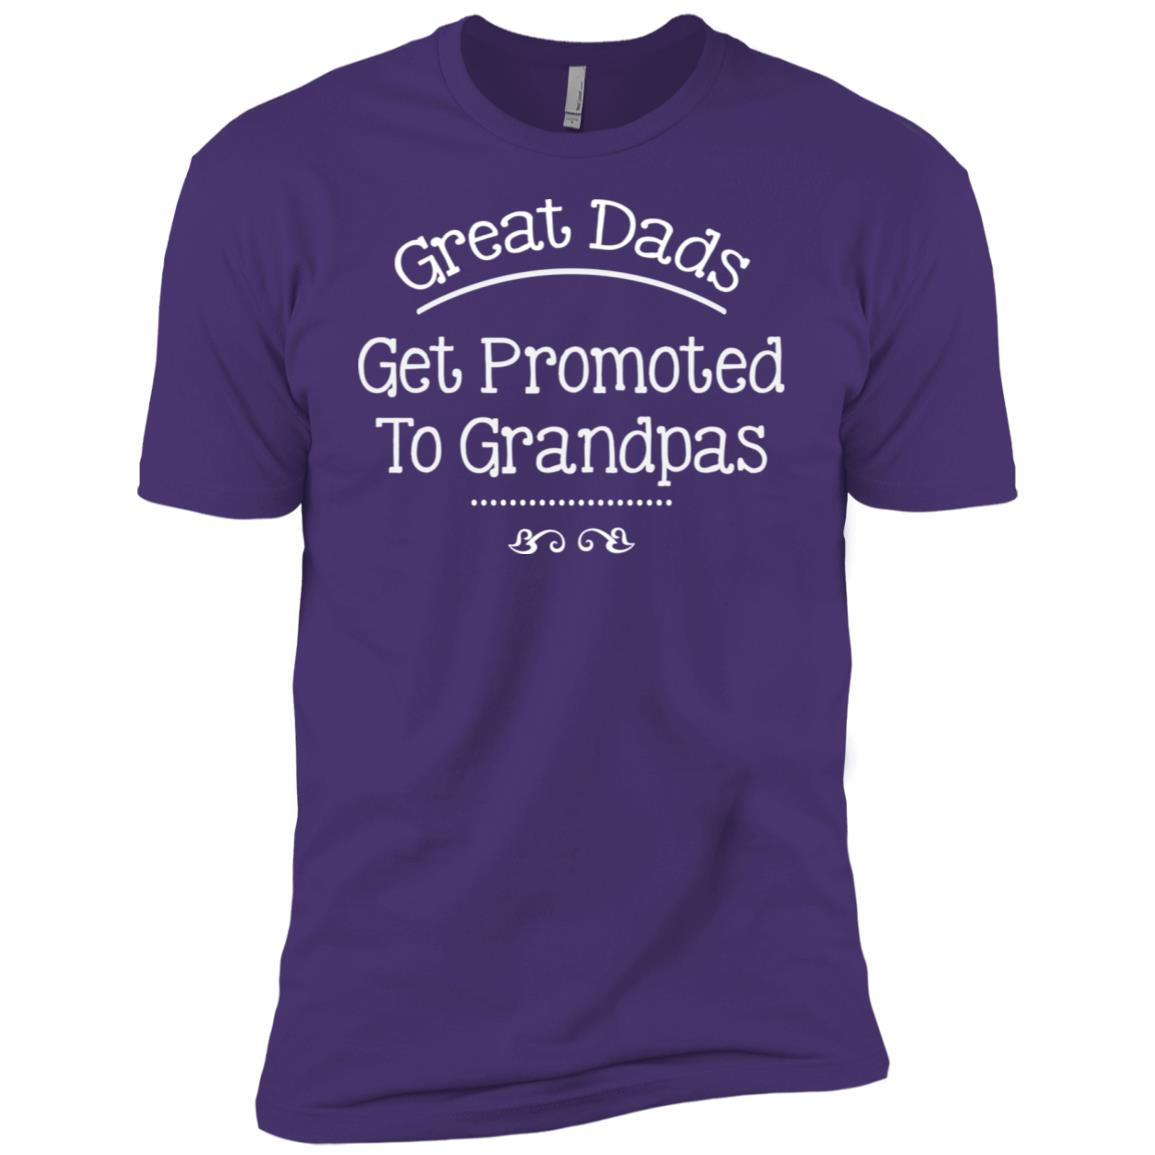 Great Dads Get Promoted To Grandpas Fathers Day Gifts Men Short Sleeve T-Shirt